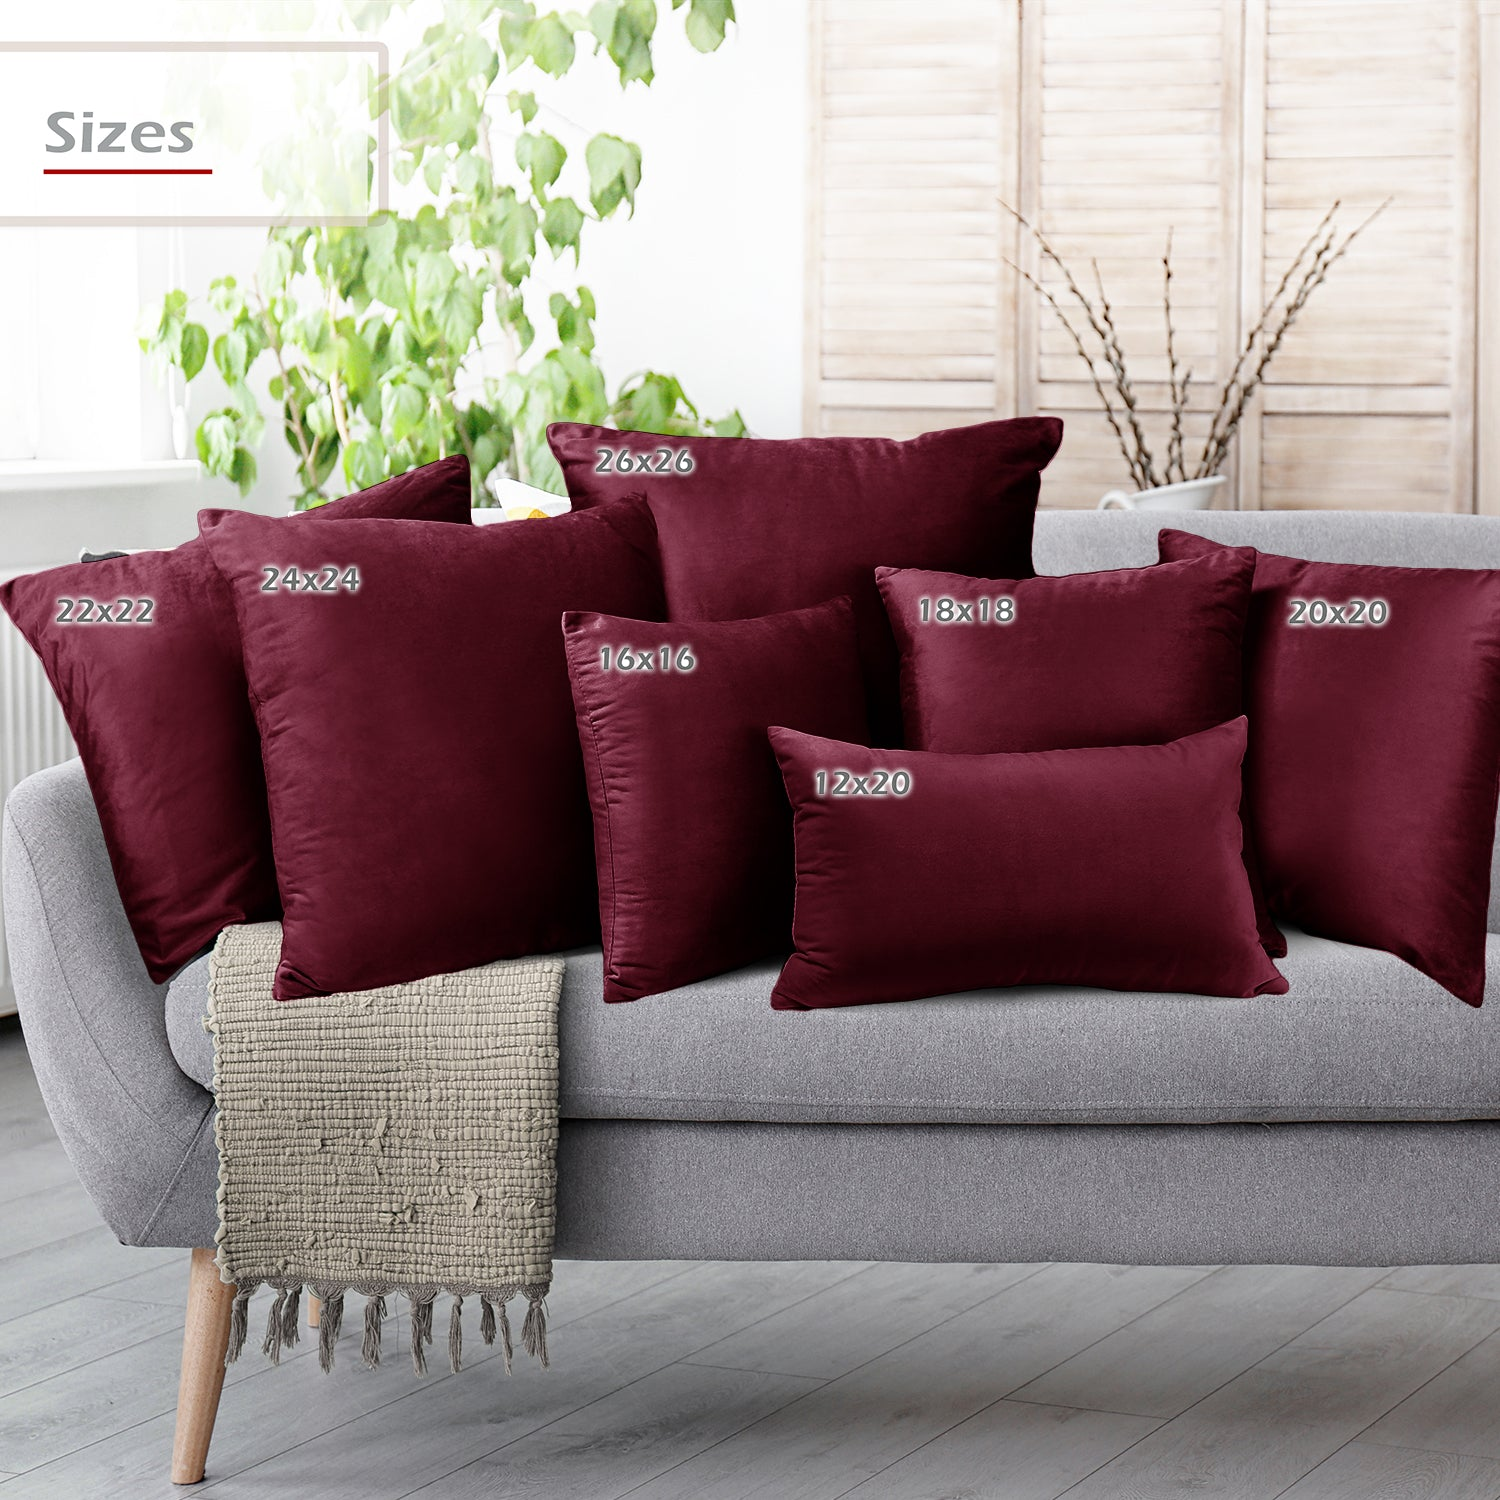 2 Pack 12 x 20 Nestl Bedding Throw Pillow Covers, Cozy Velvet Decorative Outdoor Pillow Covers, Soft Solid Cushion Covers for Sofa, Bed and Car